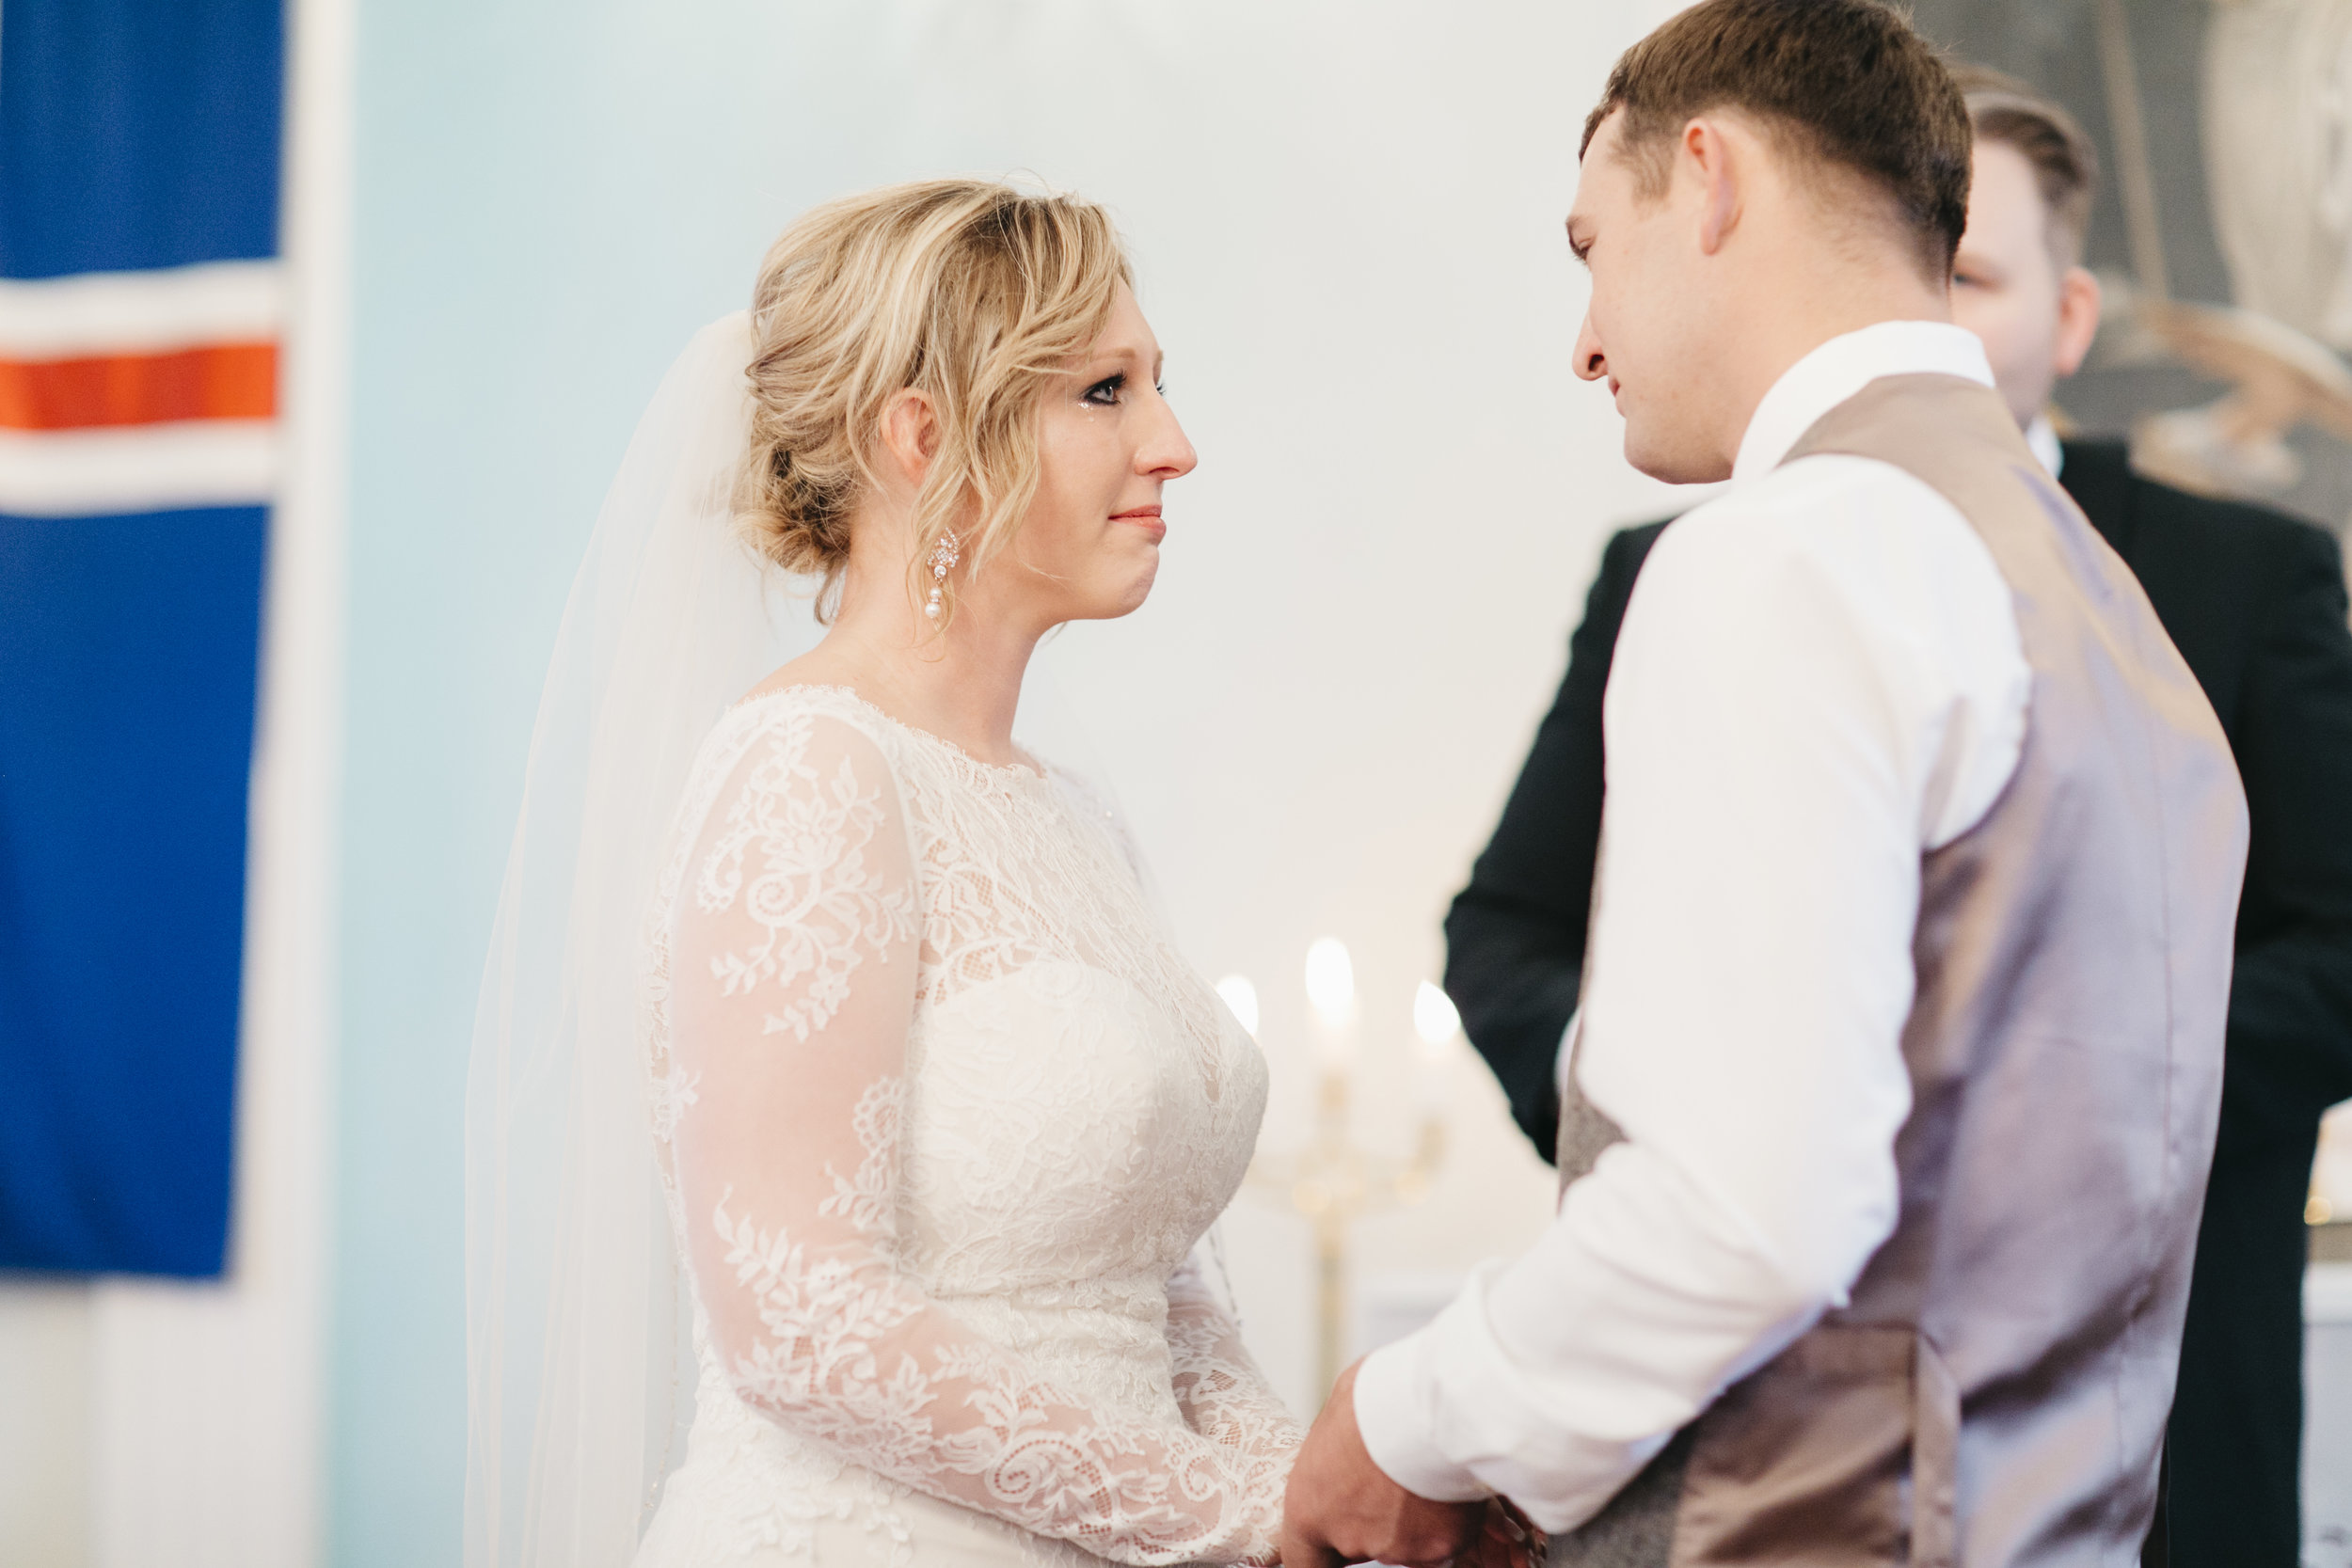 An emotional bride listens to her groom's vows during their elopement ceremony in Hvalsneskirkja Church in Iceland while photographed by Colby and Jess.